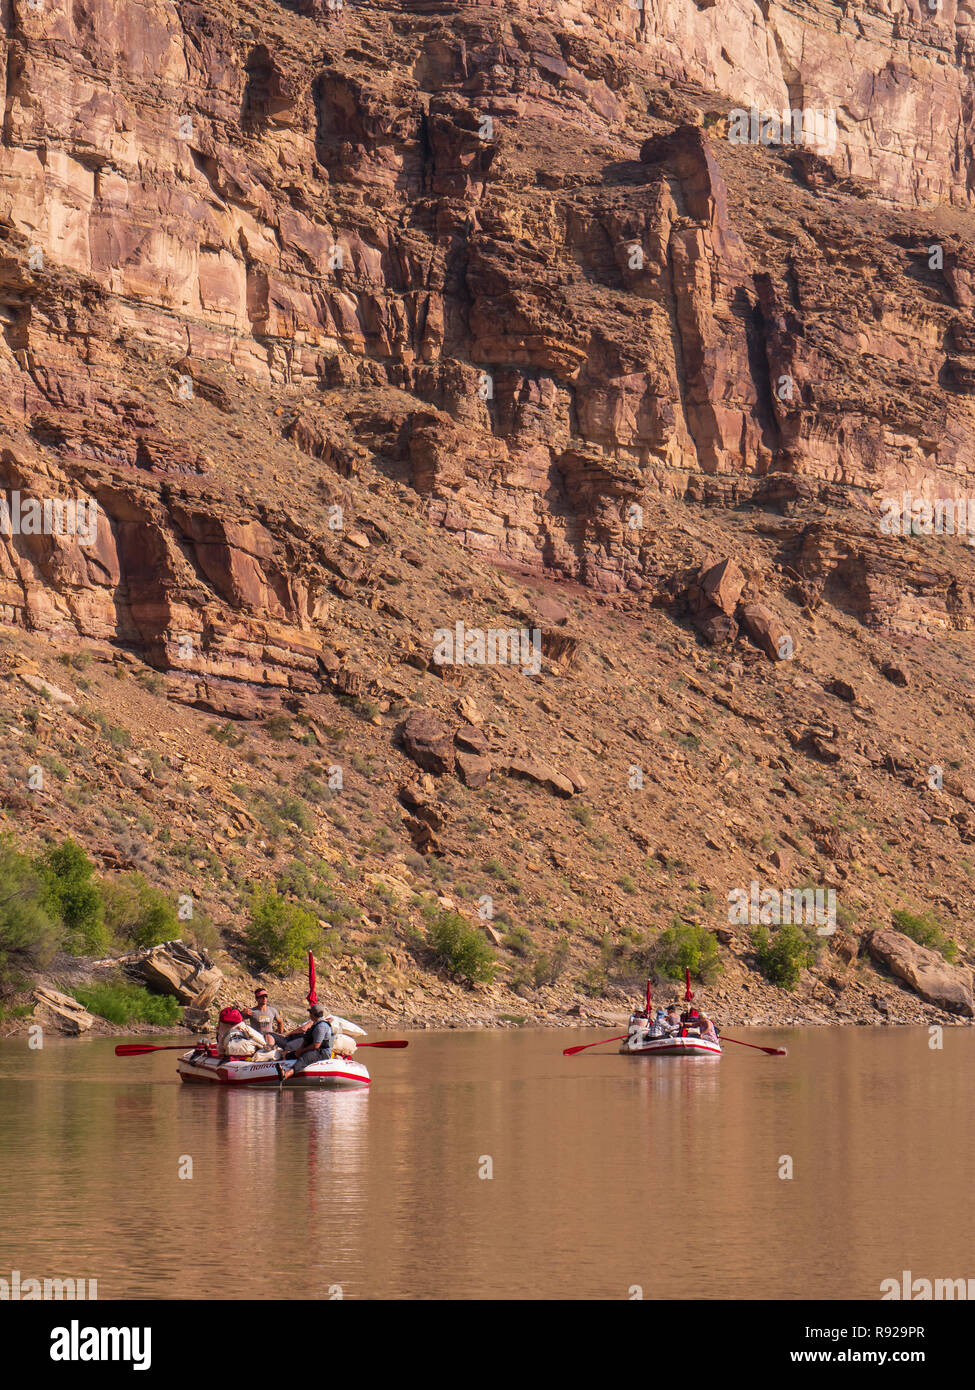 Floating down the river, upper Desolation Canyon north of Green River, Utah. - Stock Image